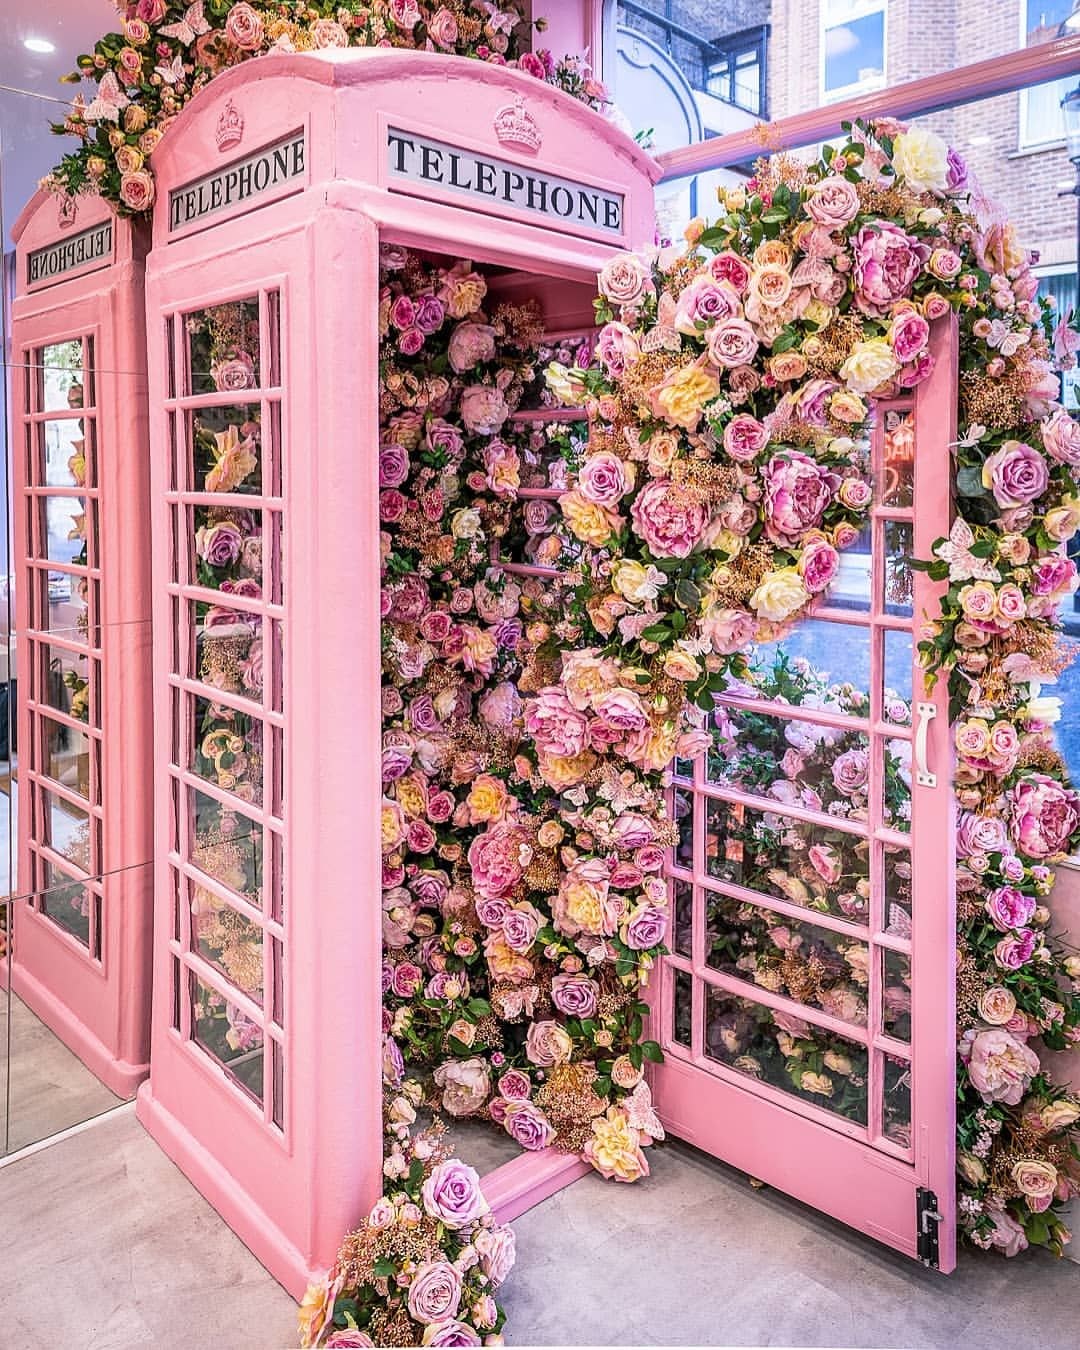 """🇬🇧 London📍UK📍Europe 🇪🇺 England on Instagram: """"🇬🇧 🌸 It's looking all rosey here! Is pink the new red? 😉🌸 🇬🇧 #WeNailedIt ======================================== 🔵@London 🔴 @Instagram 🔵…"""""""